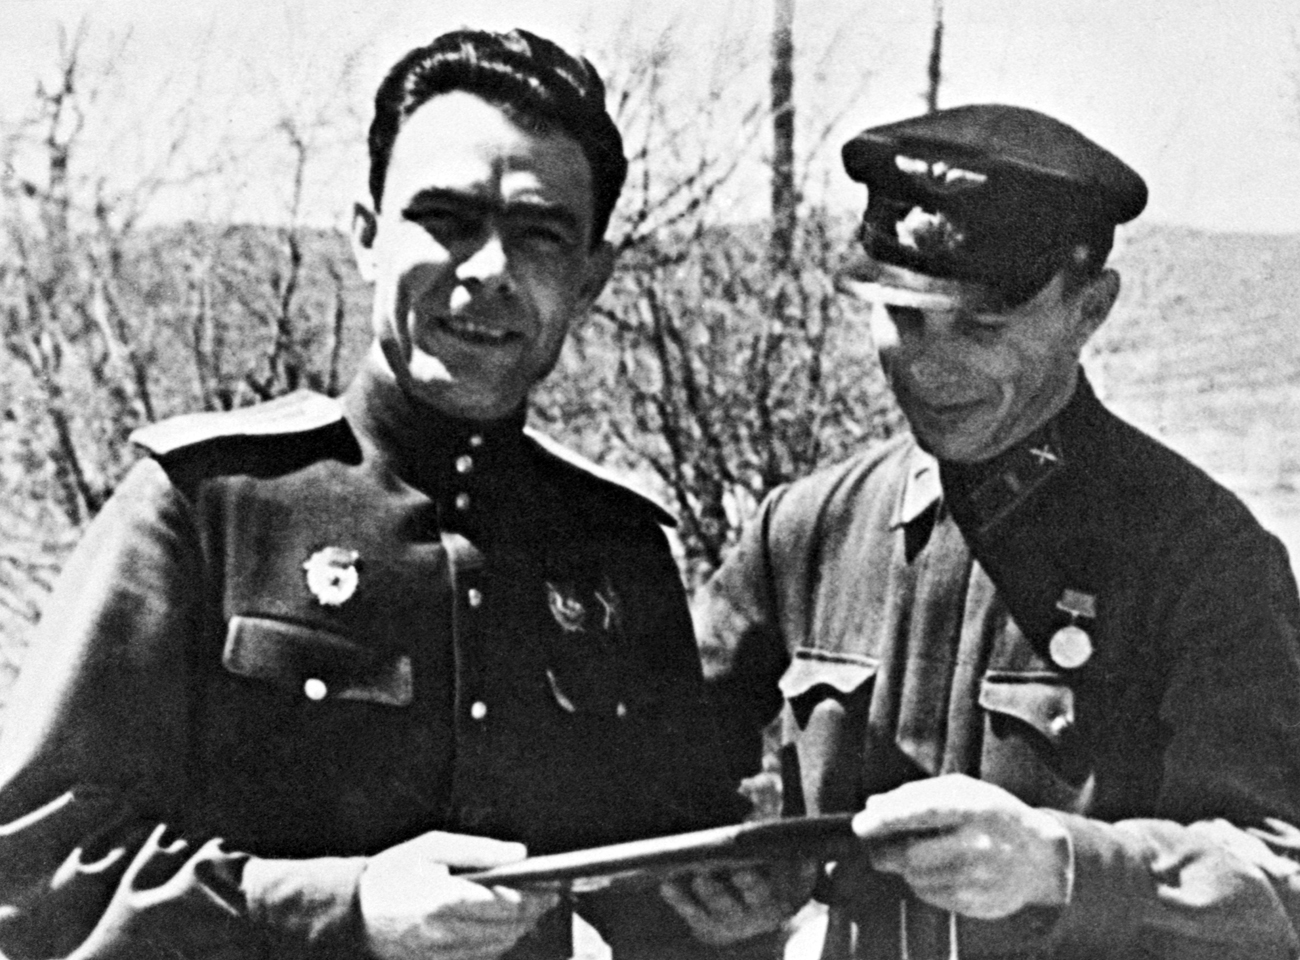 Great Patriotic war. Head of the political department of the 18th army Leonid Brezhnev (L) has a conversation with a comrade at Malaya Zemlya near Novorossiysk on June 1, 1943. Source: TASS